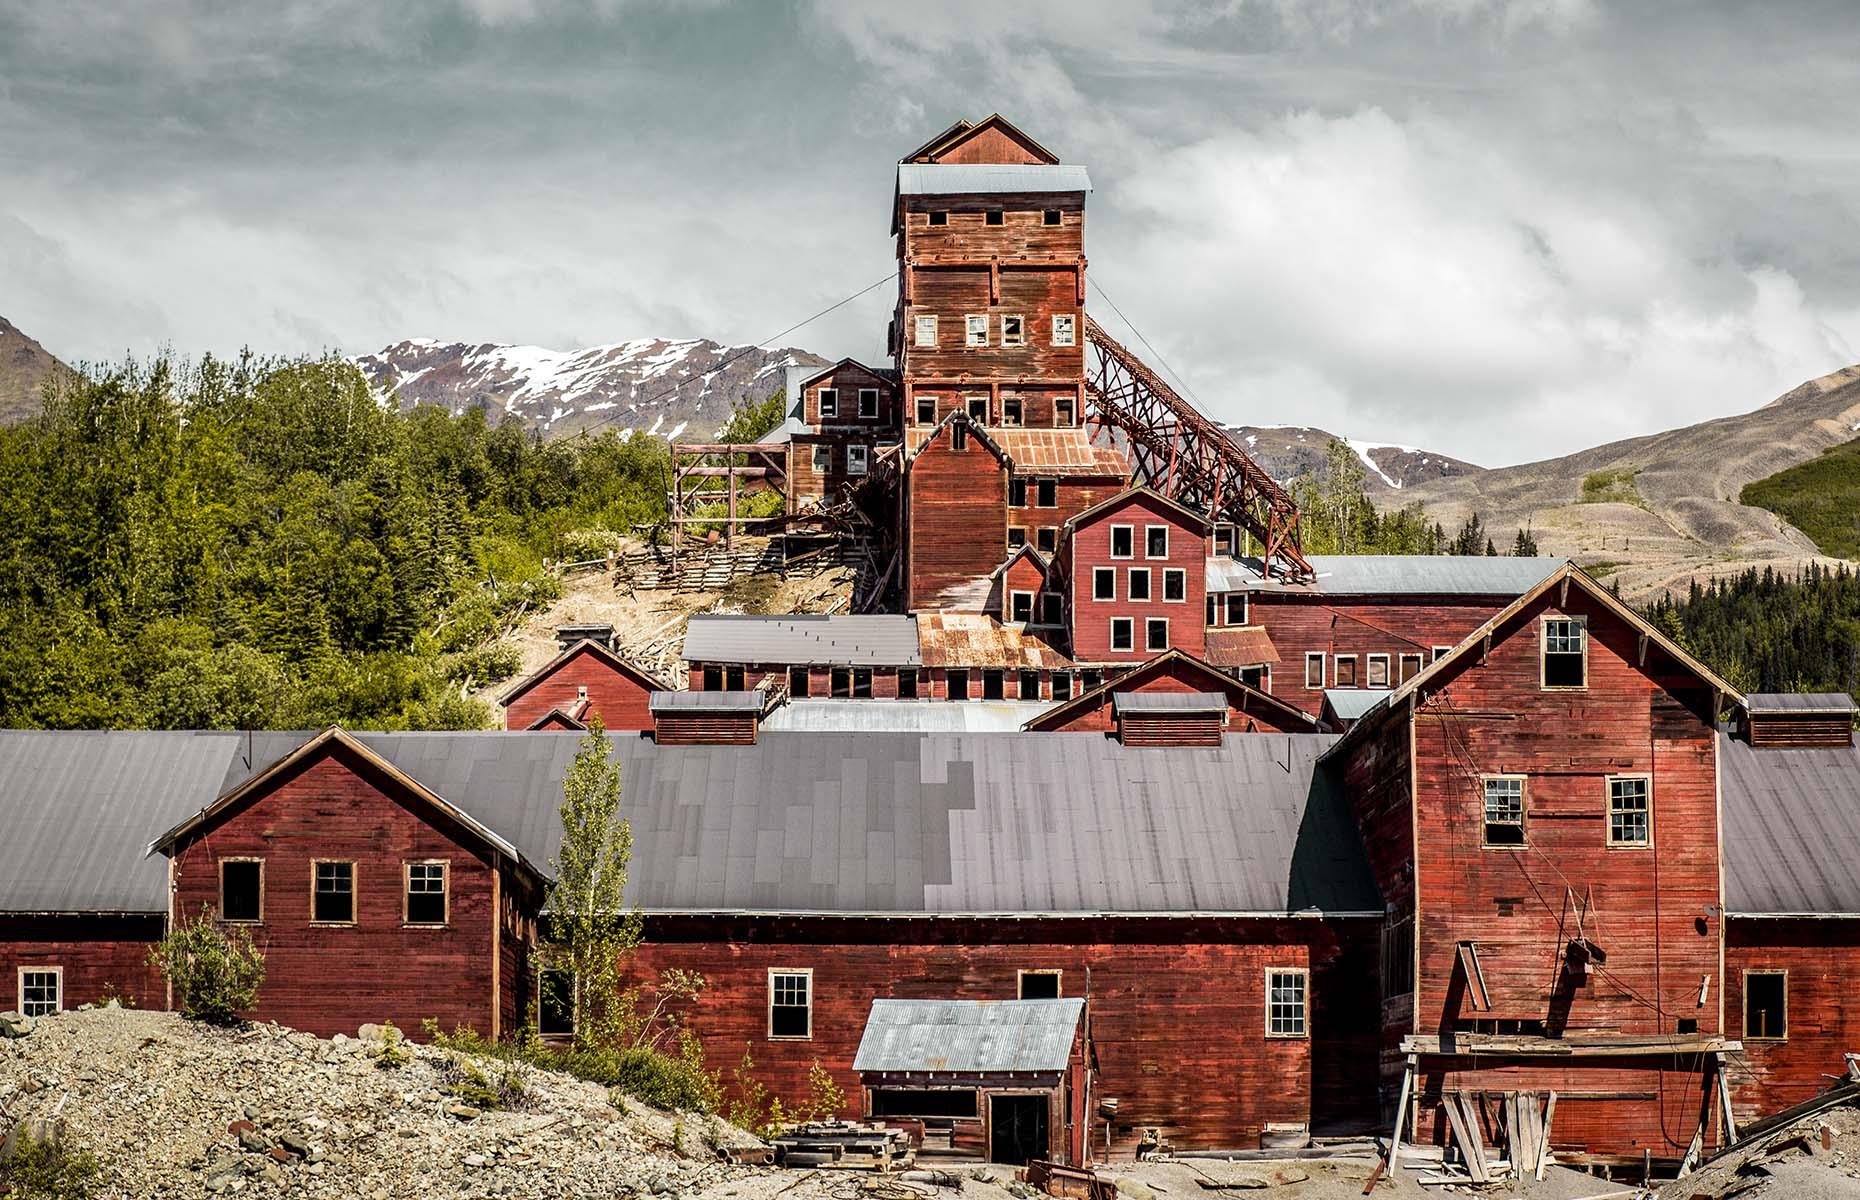 Slide 24 of 46: Between 1909 and 1938 Kennecott mines produced over 4.6 million tons of ore that contained $1.55 billion of copper. But by the late 1930s the mines were depleted, and the facilities abandoned. It has been a national historic landmark open to visitors since the 1980s.